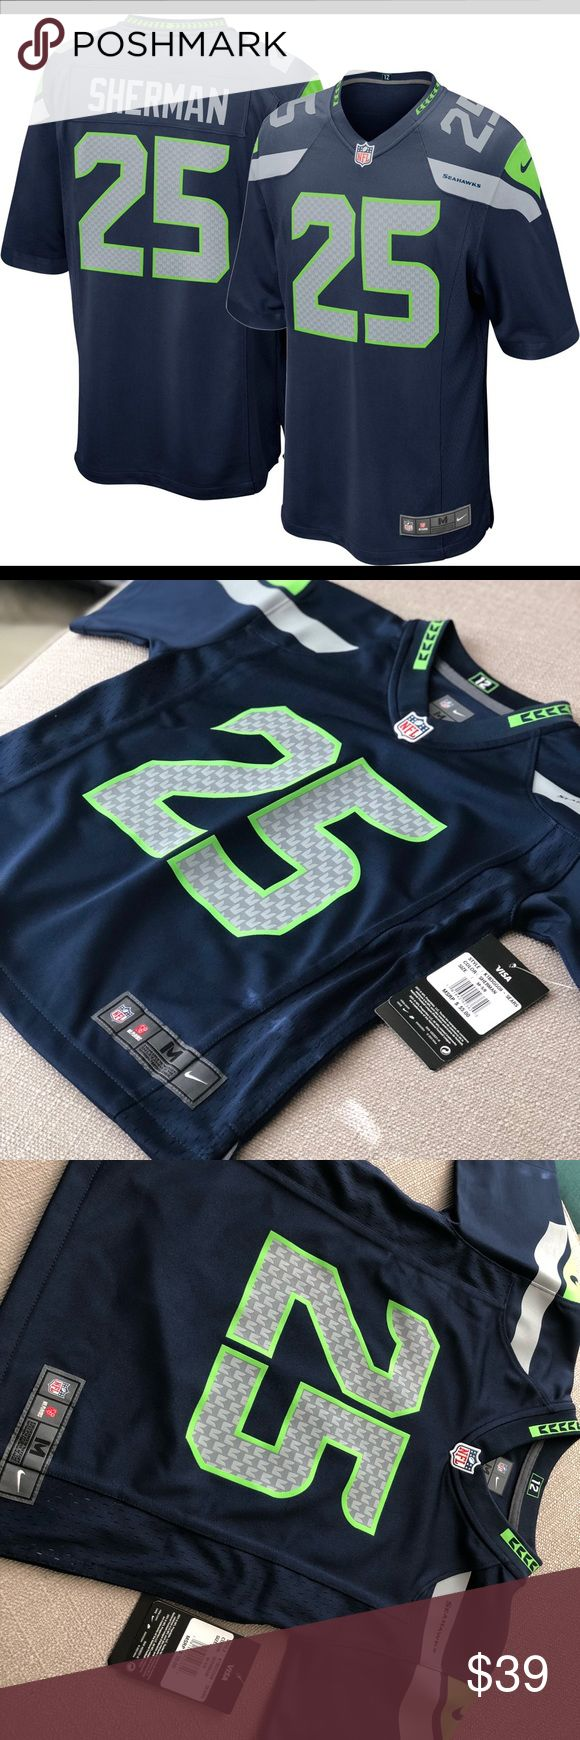 Nike Youth Jersey Seattle Seahawks Sherman #25 - Water-repelling fabric to help keep you stay lightweight and dry - Tailored fit for comfort - Flexible twill numbers - No-tag neck label - Stitched player's name, number on chest, back and sleeves - Embroidered nike logo on each sleeve and team wordmarks or logos on chest - TPU metallic-effect shield at V-neck - Laser-cut embossed jock tag - Fabric: BODY: 91% NYLON/ 9% SPANDEX MESH/ 88% NYLON/ 12% SPANDNEX - Strategic ventilation over major…